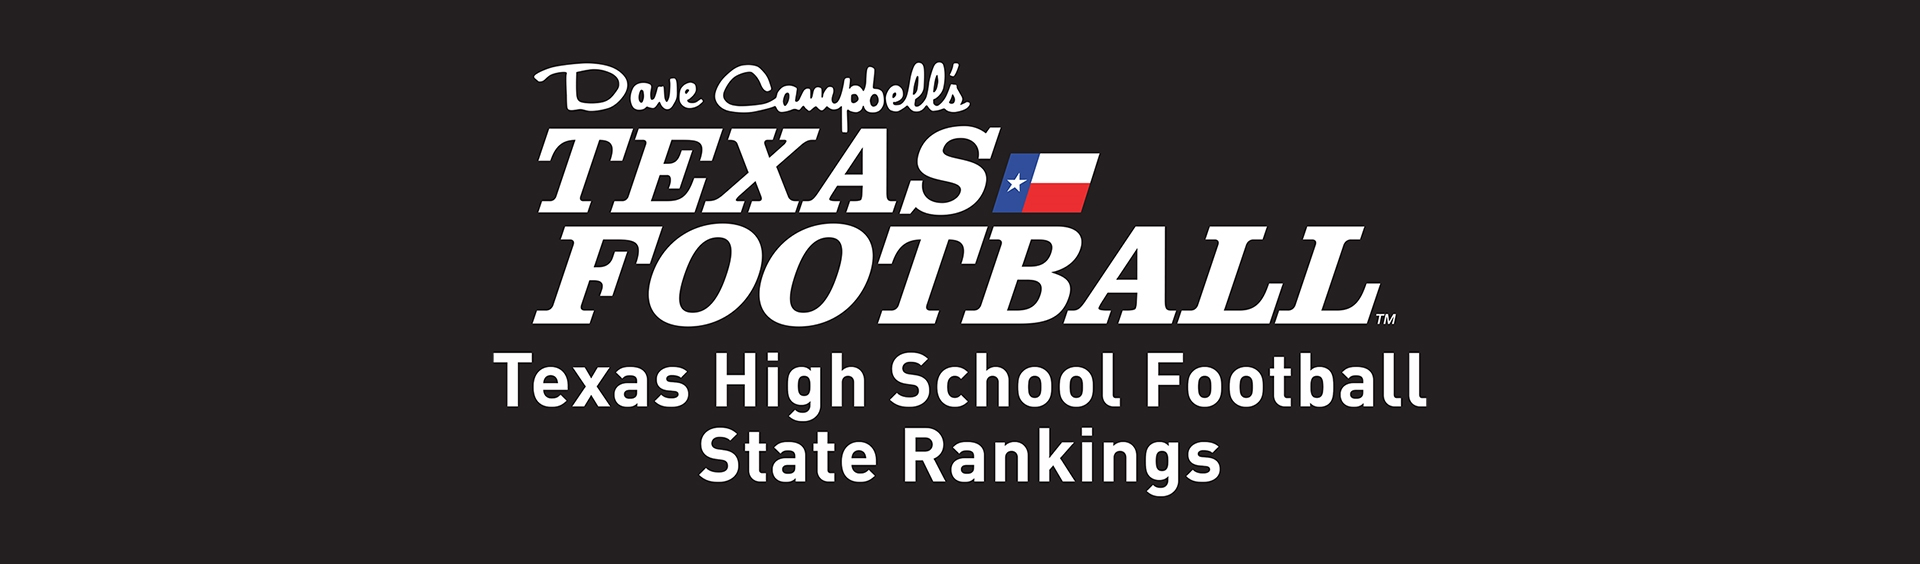 Texas High School Football Rankings Statewide Txhsfb Rankings From